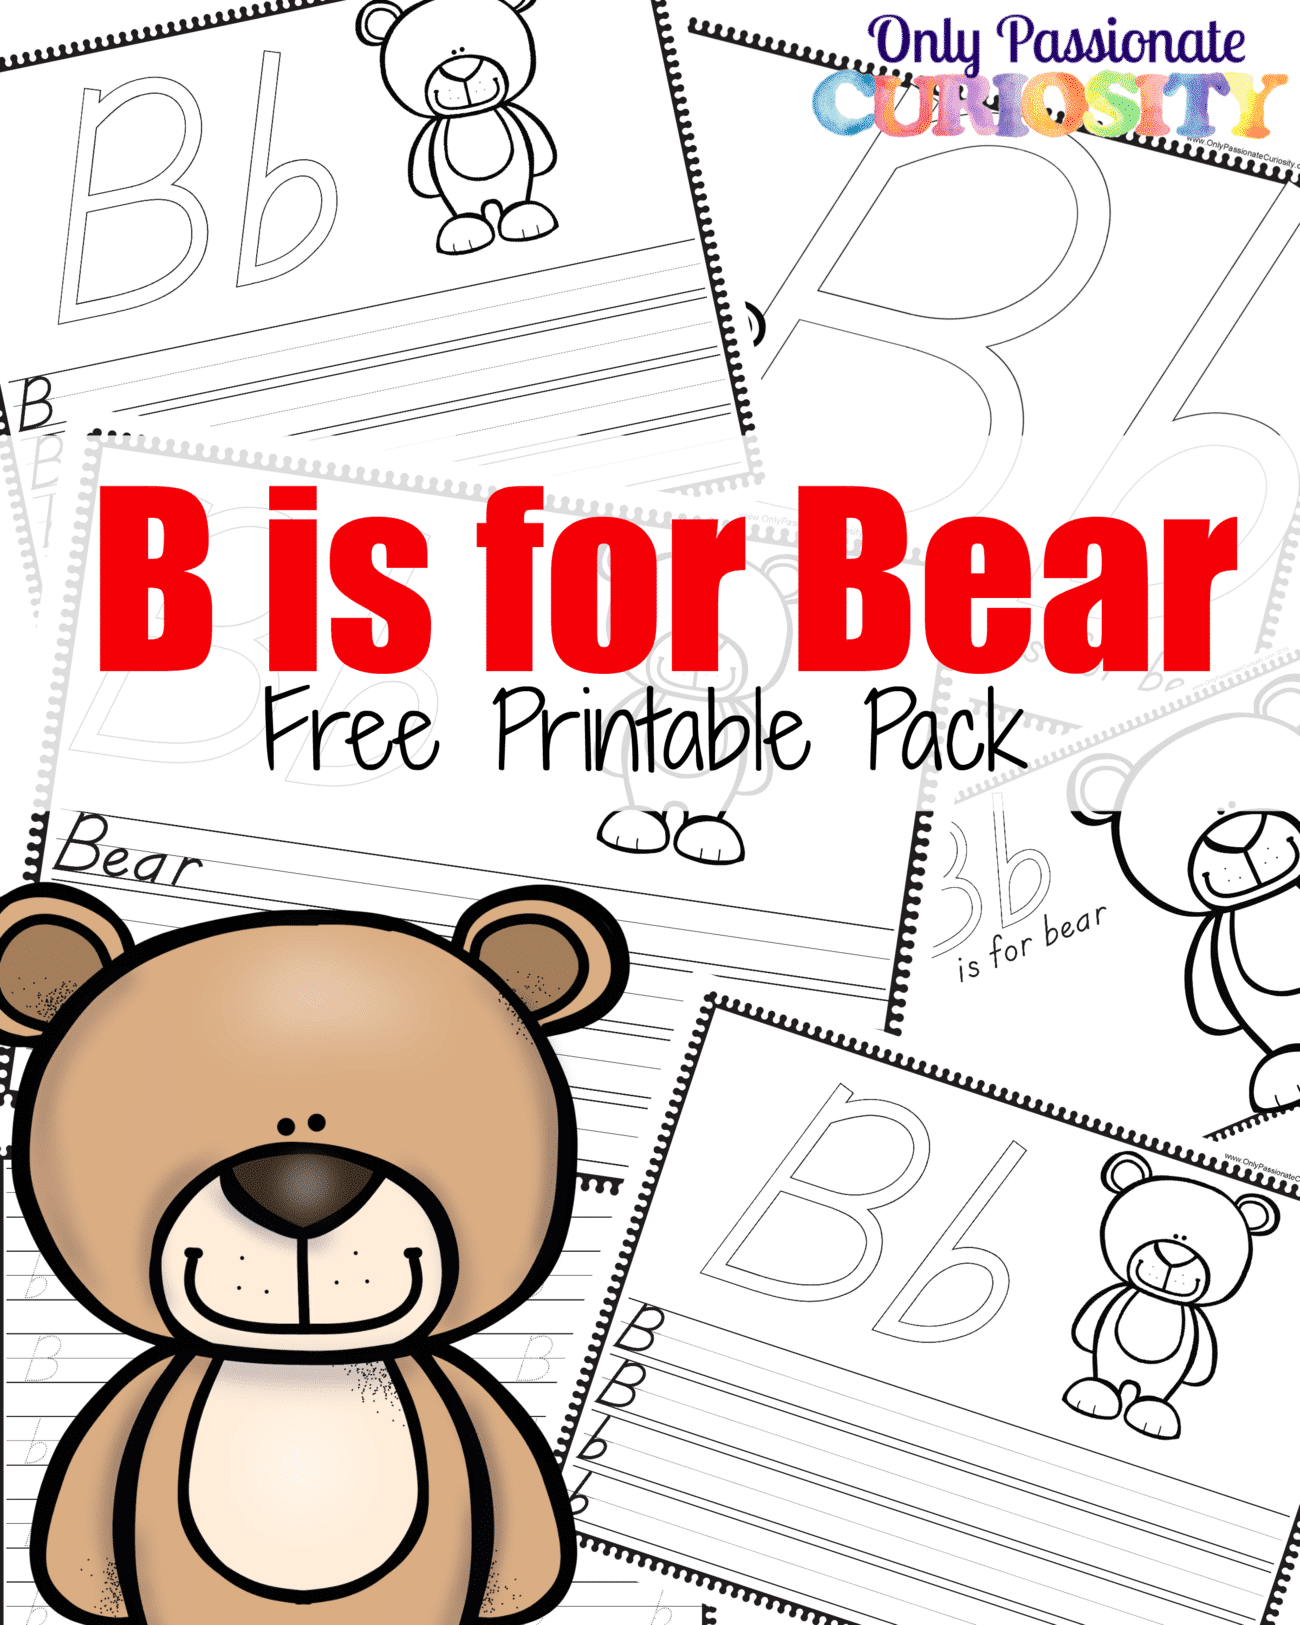 B Is For Bear Abcs For Me Printables Only Passionate Curiosity